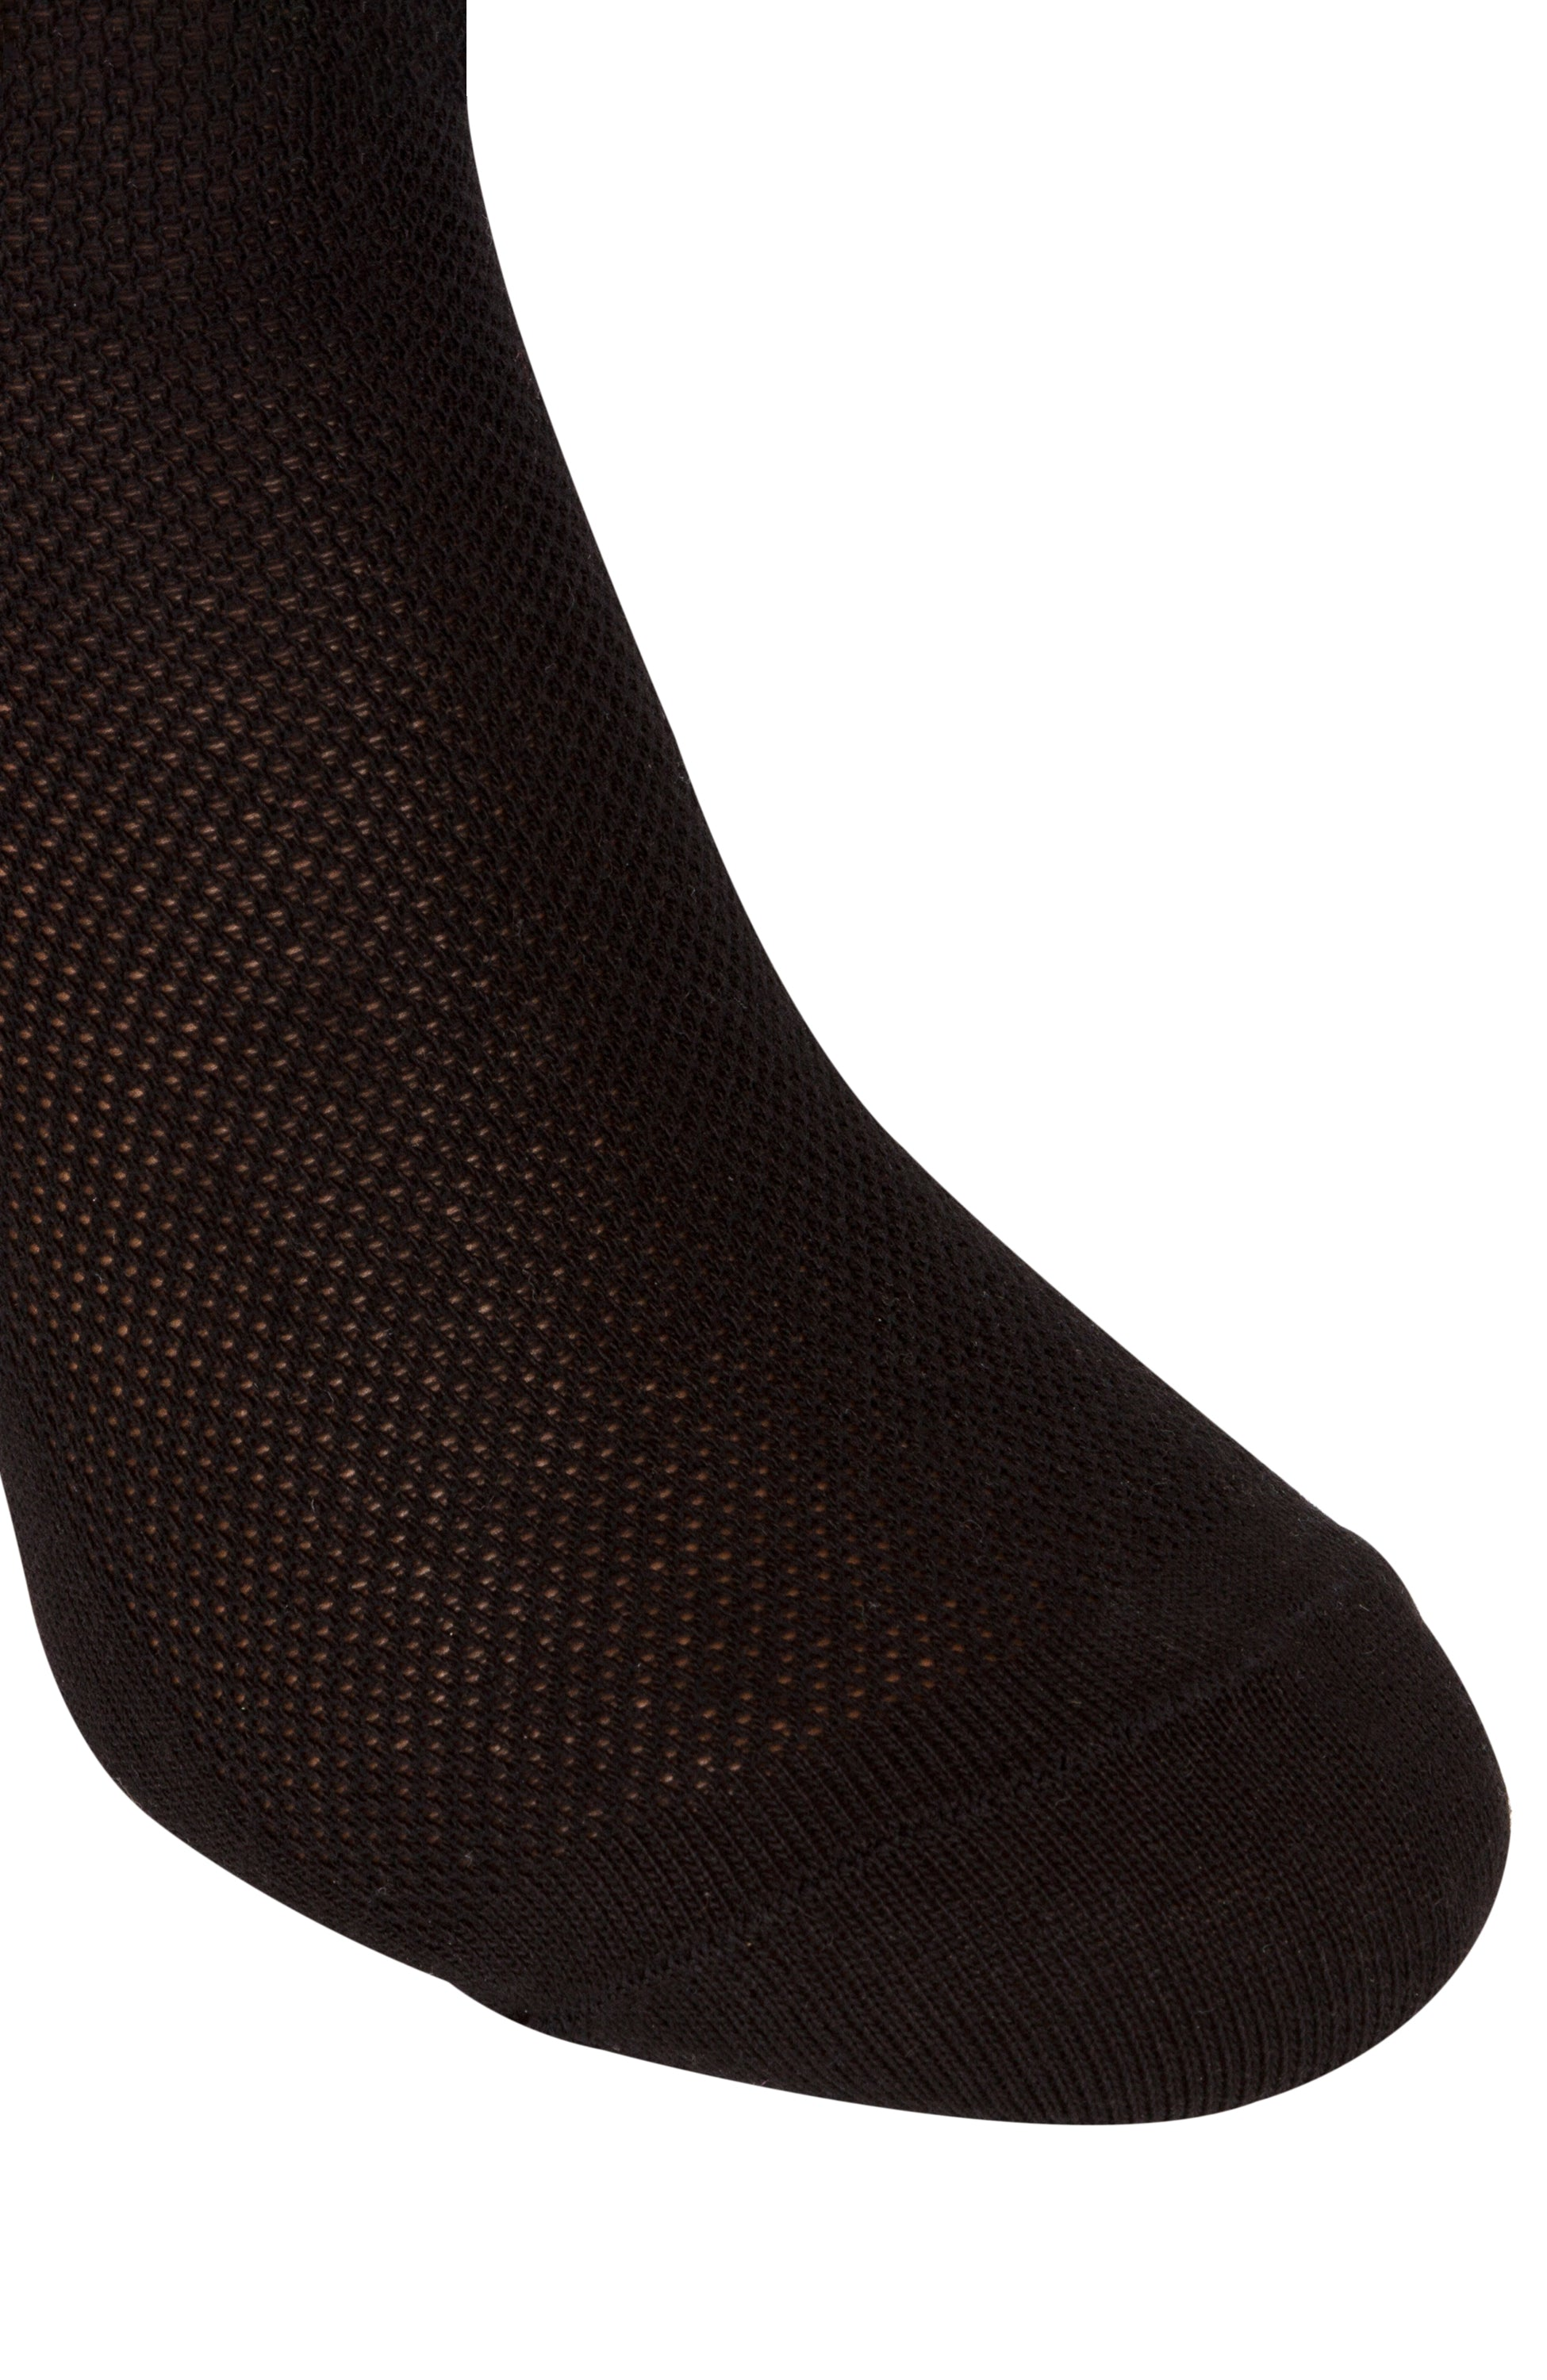 Summer Dress Socks for Men, 3 packs Thin Breathable Crew Black Socks, AIR SOCKS